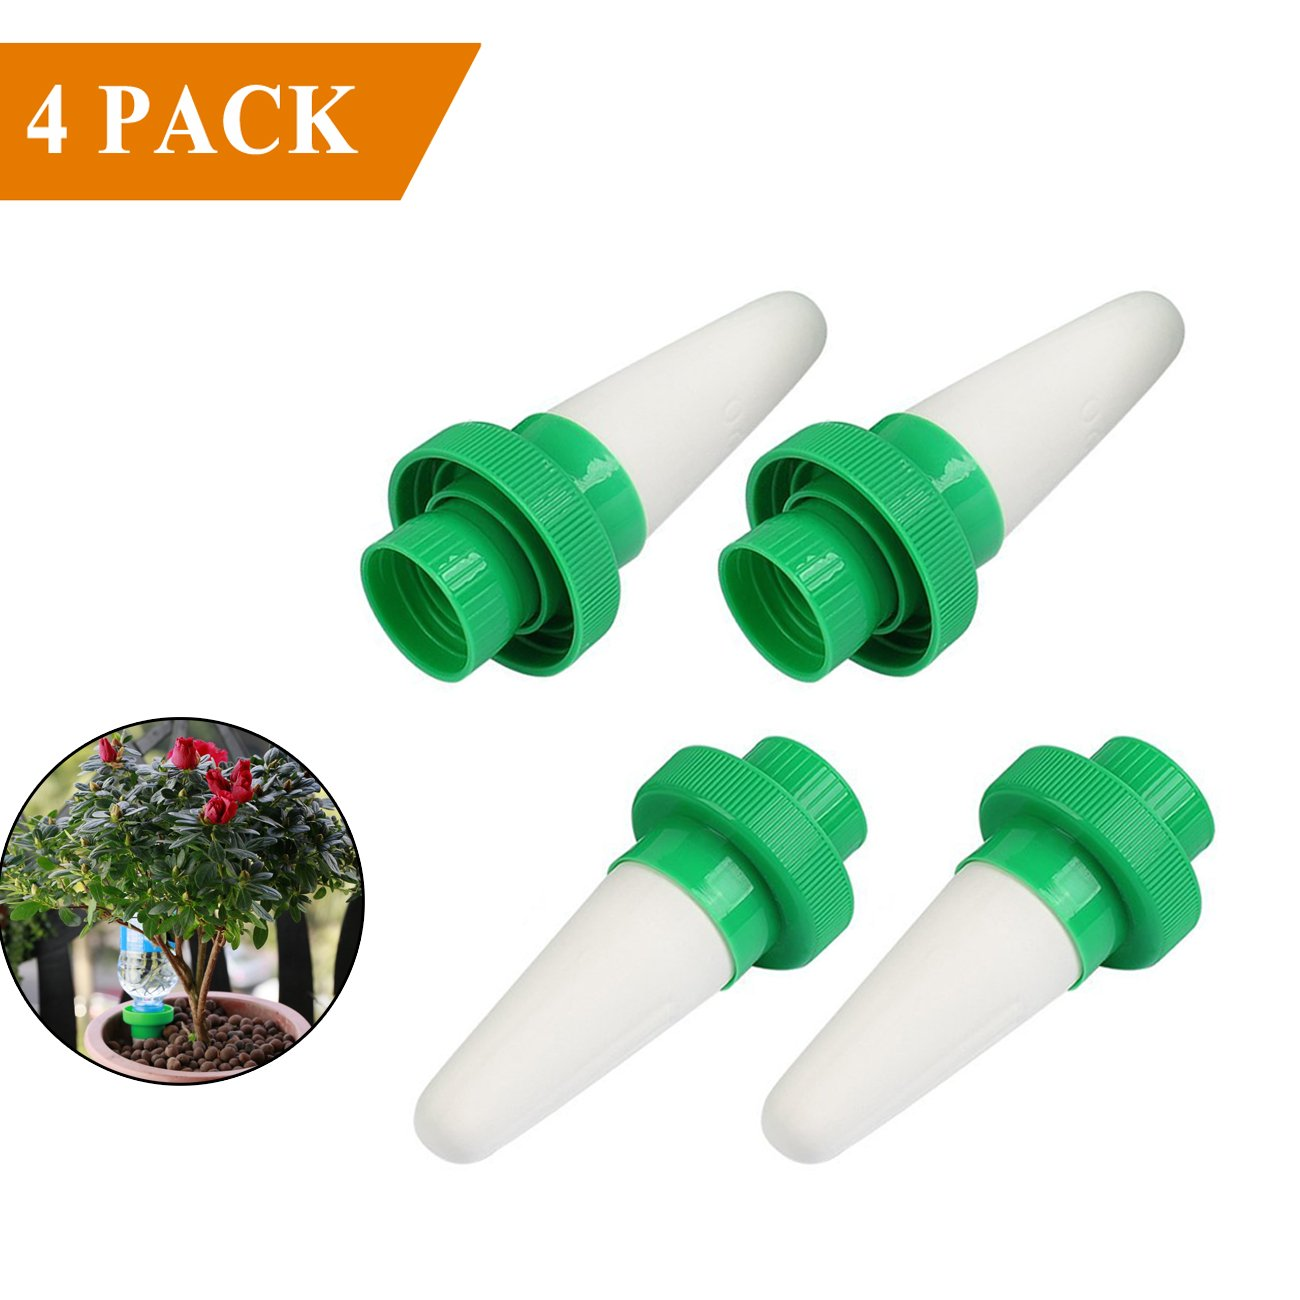 DUTISON Automatic Plant Waterer, Ceramic Plant Watering Devices/Vacation Plant Waterers, Self Irrigation Watering Stakes Slow Release System for Indoor&Outdoor Garden Use- 4 Pack by DUTISON